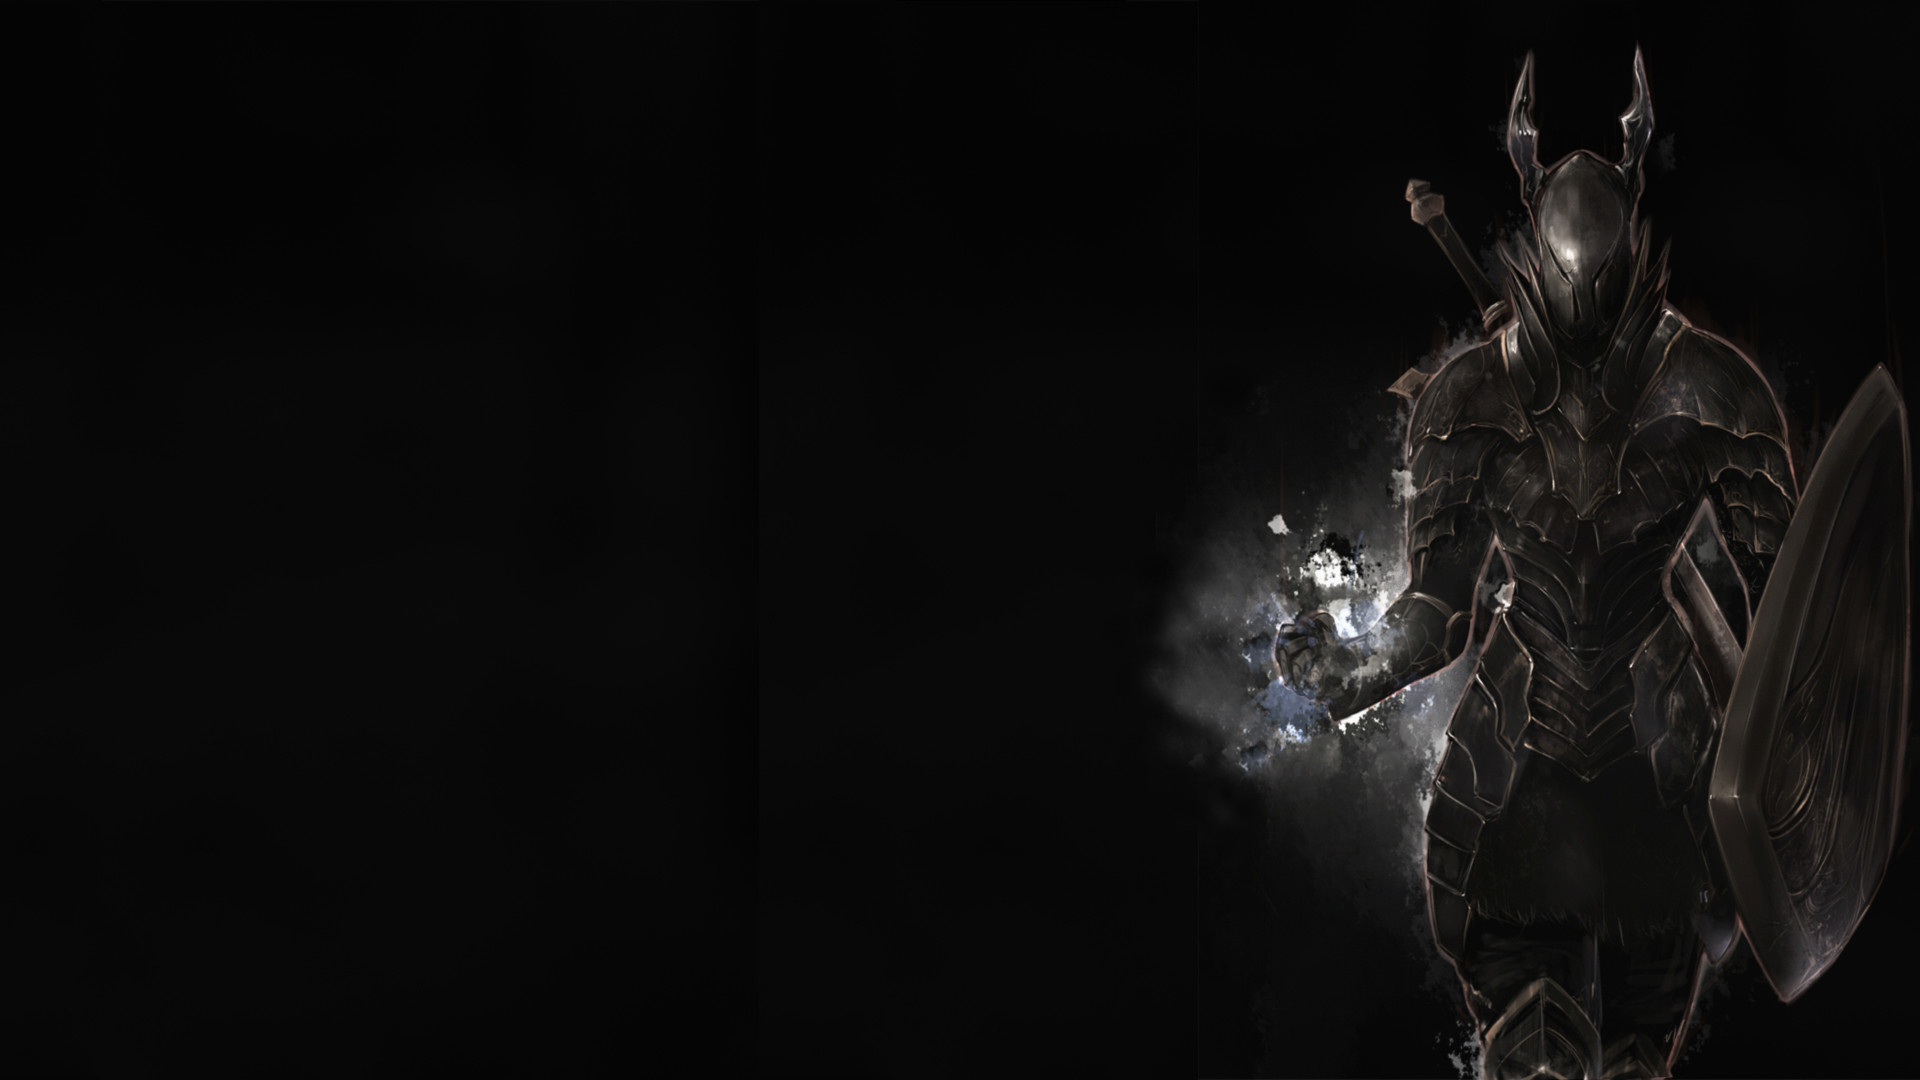 I collected some of the best and top 20+ Dark Souls Wallpapers for which lot